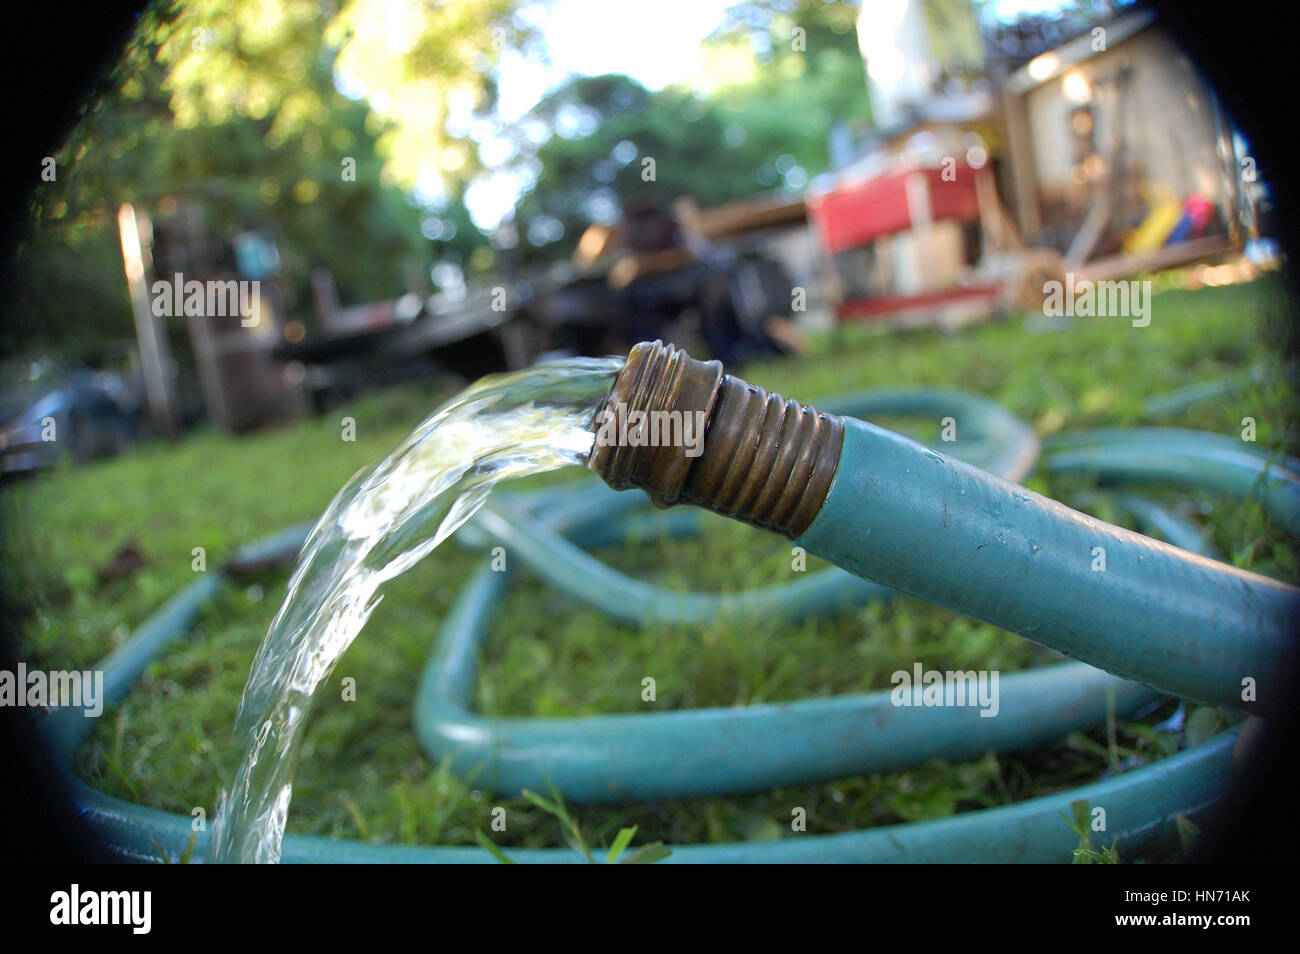 Stock Photo   Water Flowing From A Garden Hose Left Unattended On A Hot  Summer Day In The Backyard